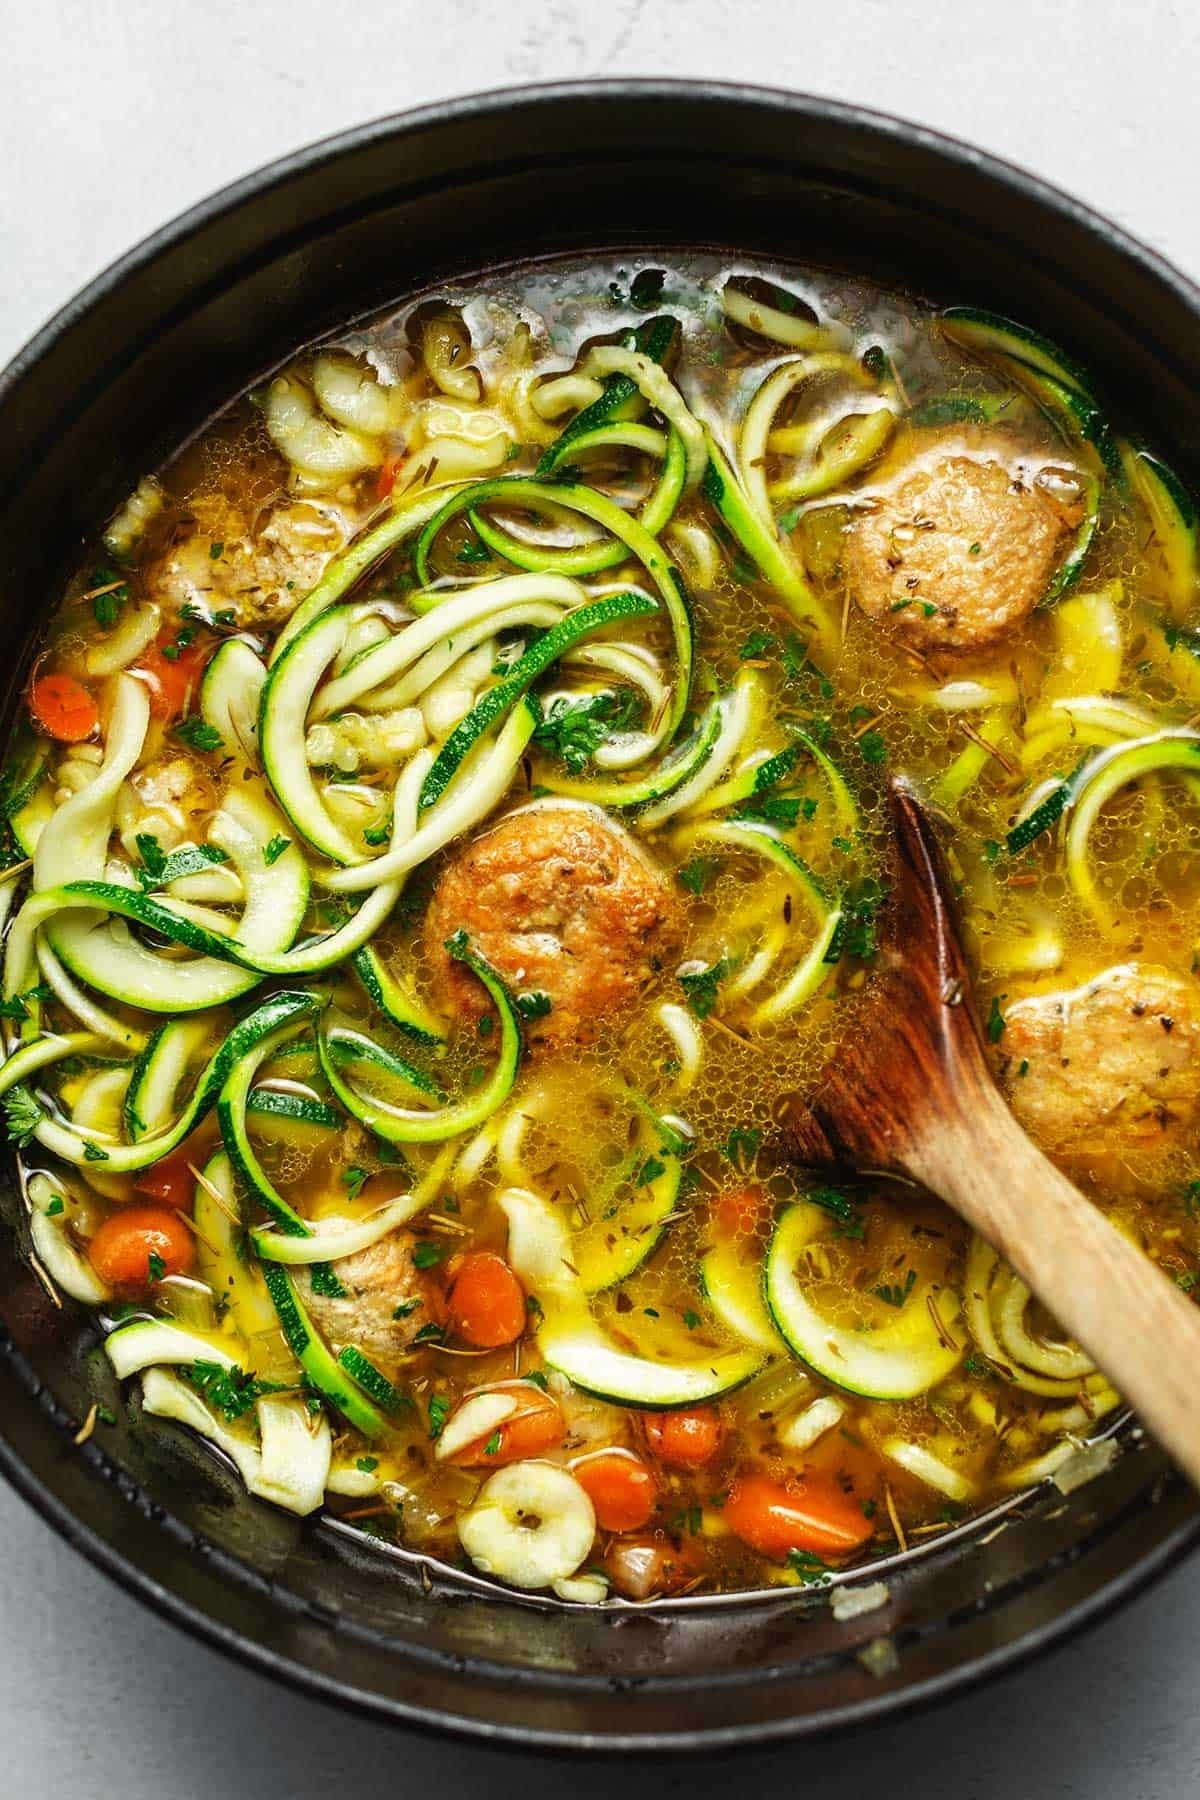 A big pot of chicken meatball and vegetable soup with zucchini noodles.